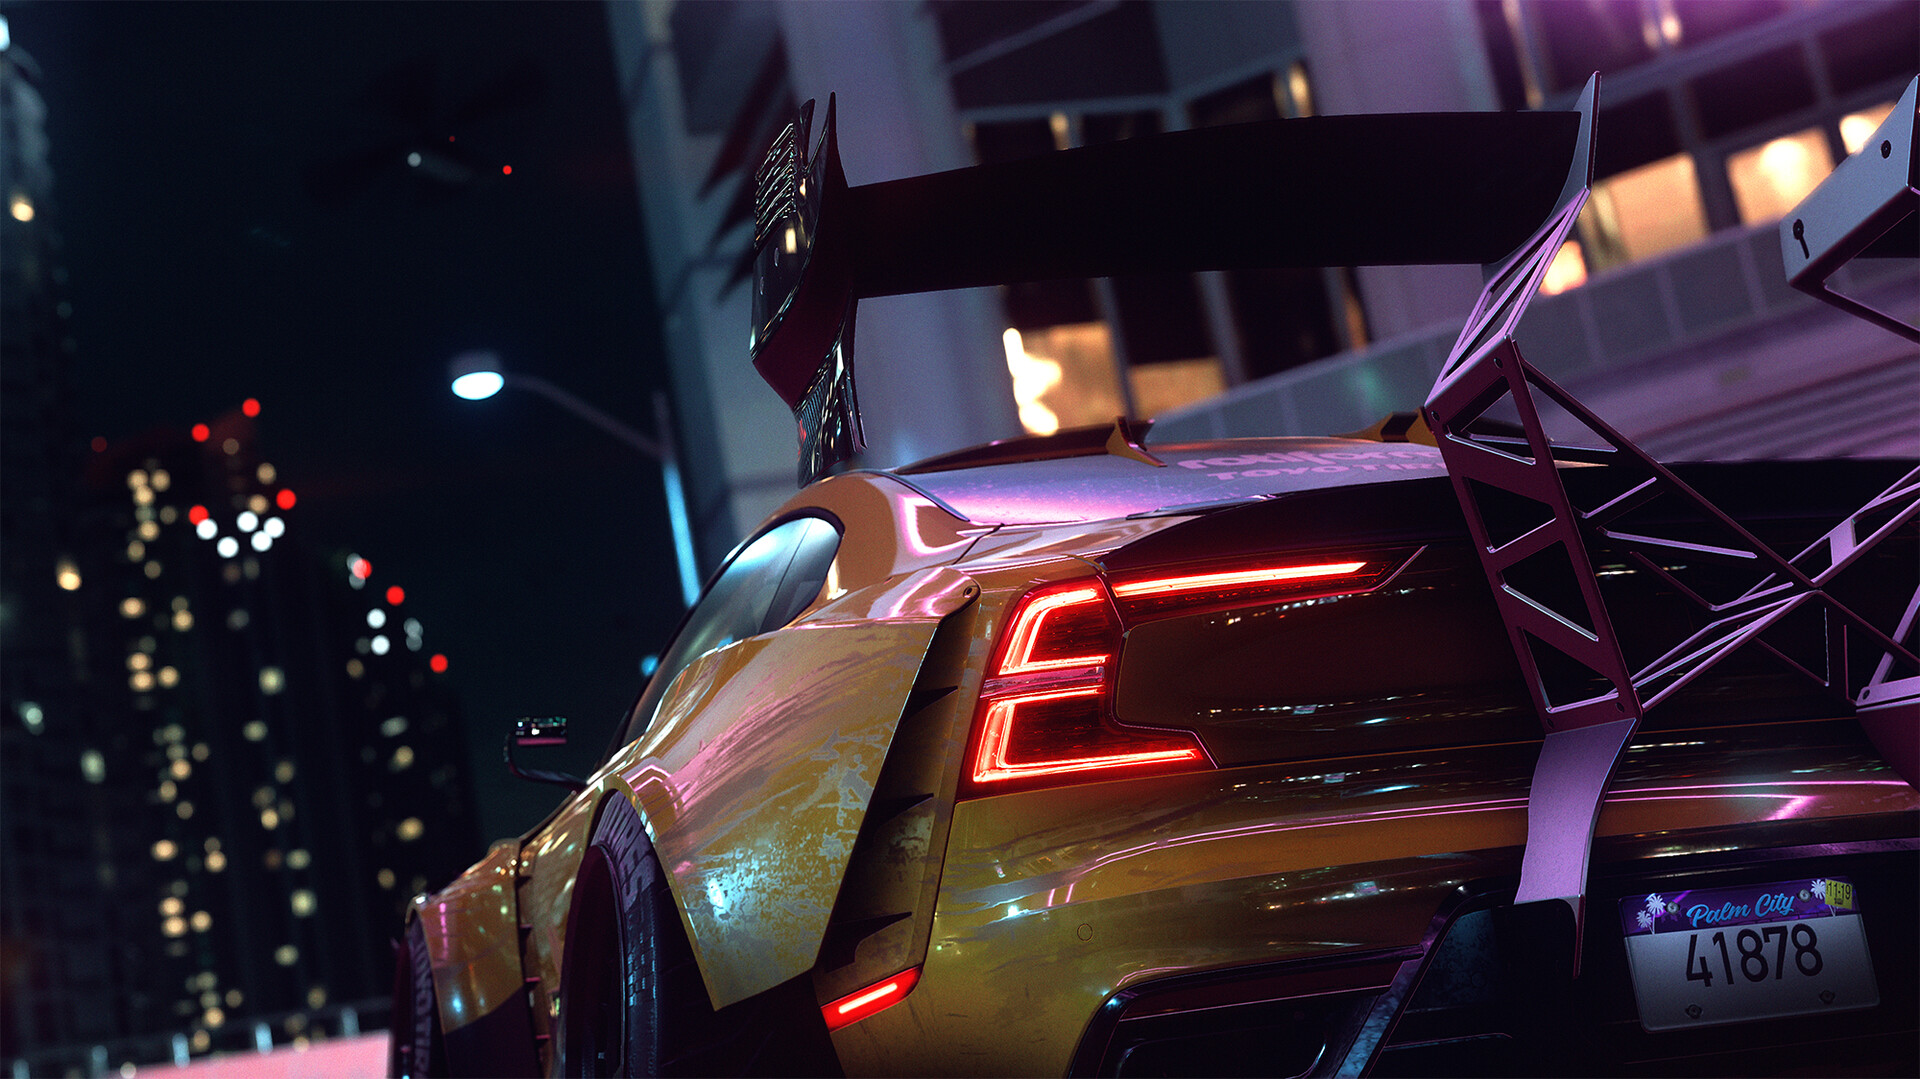 need for speed car wallpaper for desktop hd 1080p